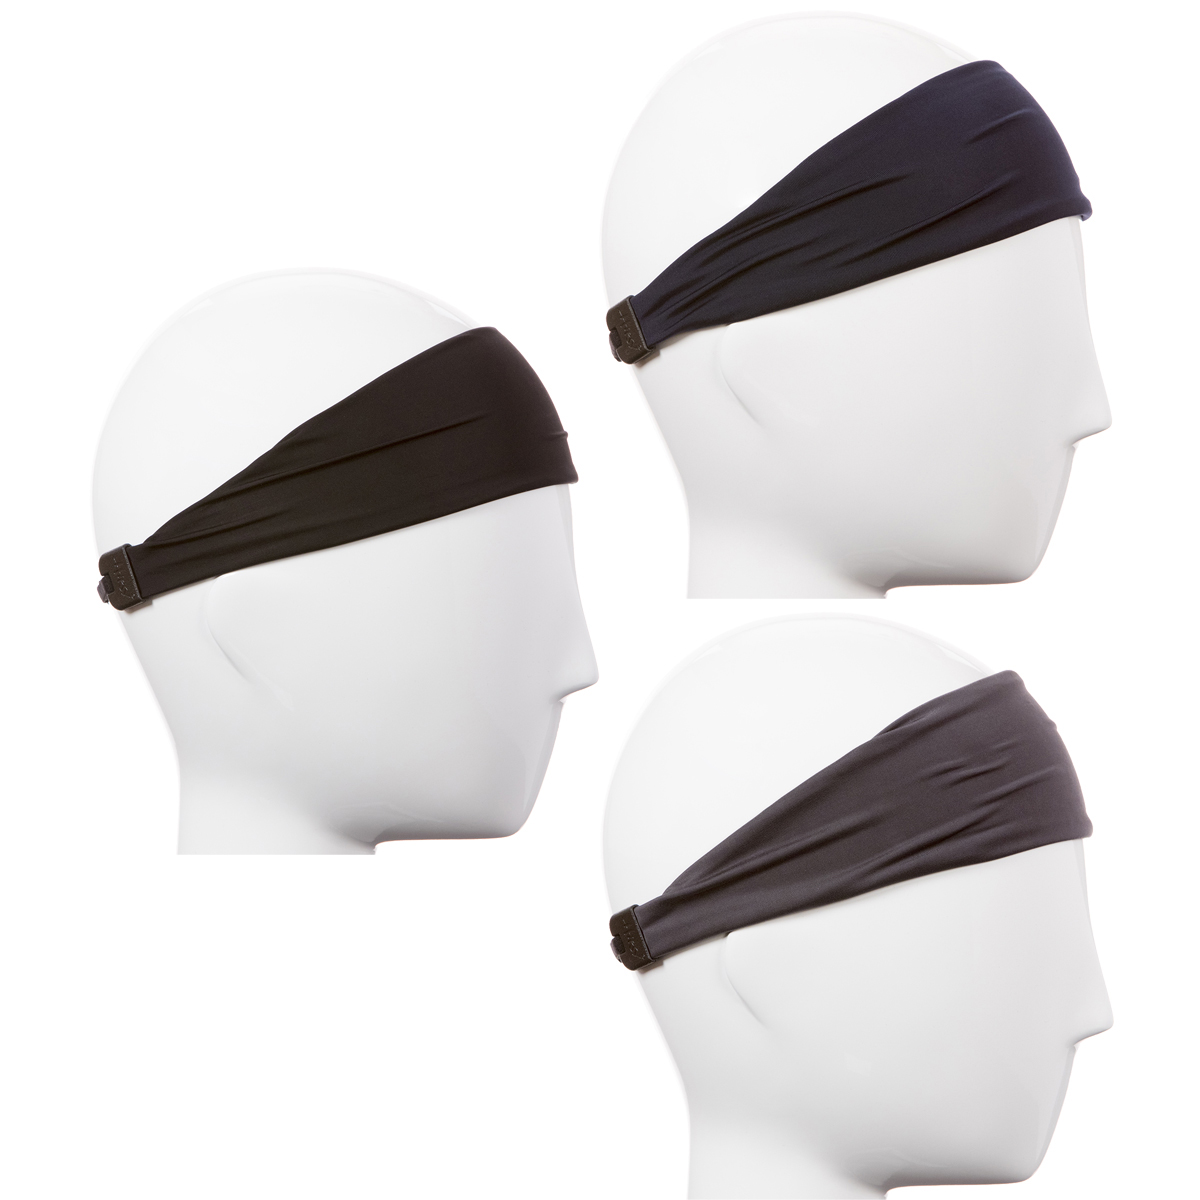 Hipsy Xflex Adjustable   Stretchy Sports Headbands for Women Gift ... 183624194fc